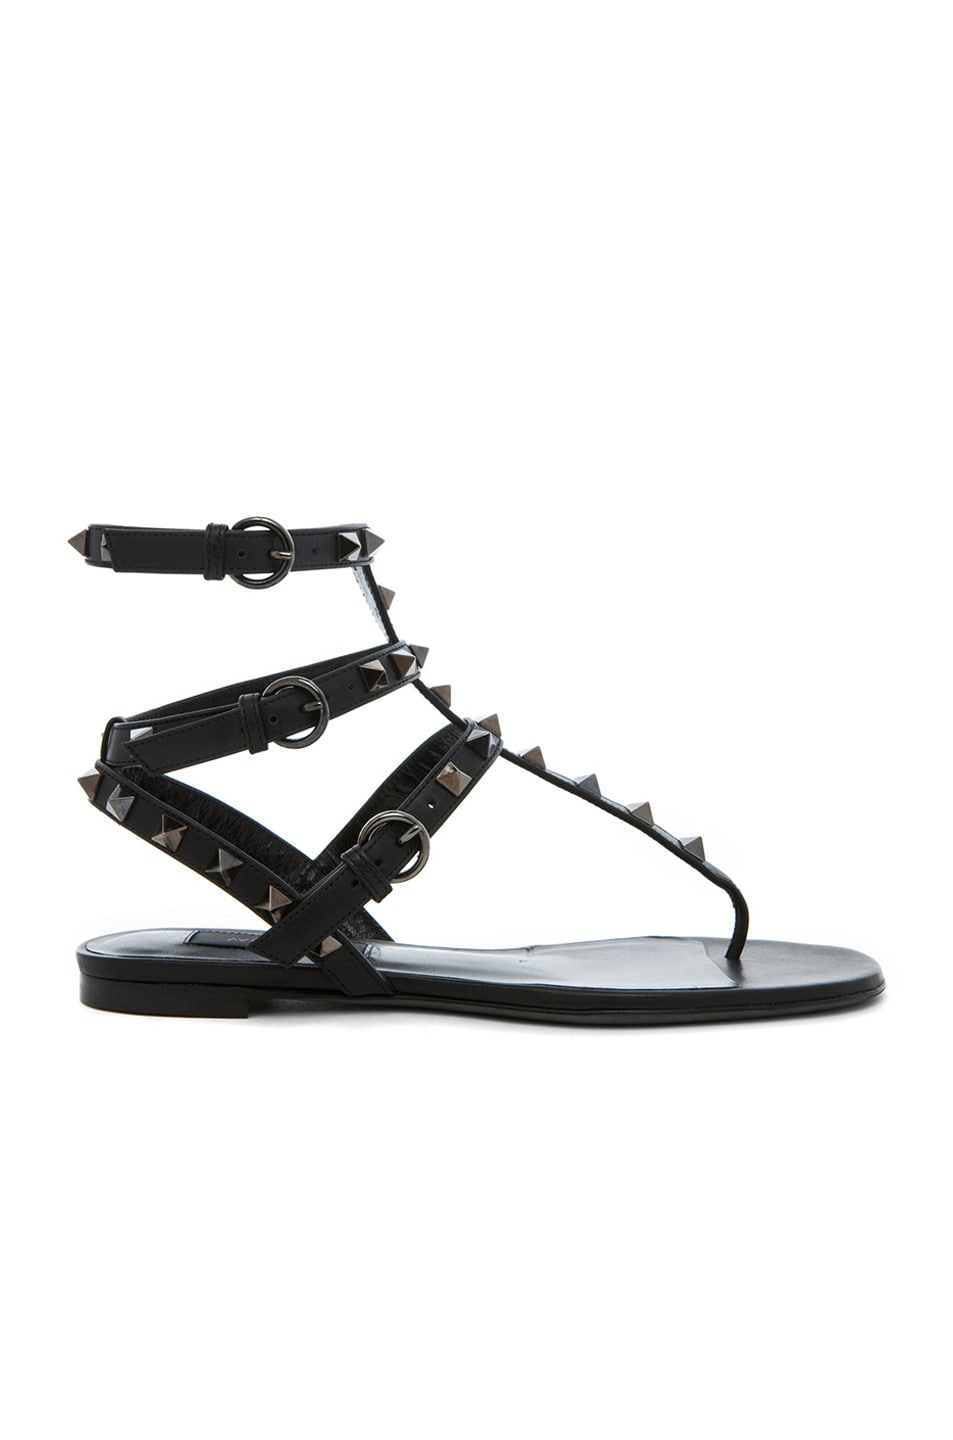 943dcb10f92 Image 1 of Valentino Rockstud Noir Gladiator Leather Sandals T.05 in  Ruthenium Black